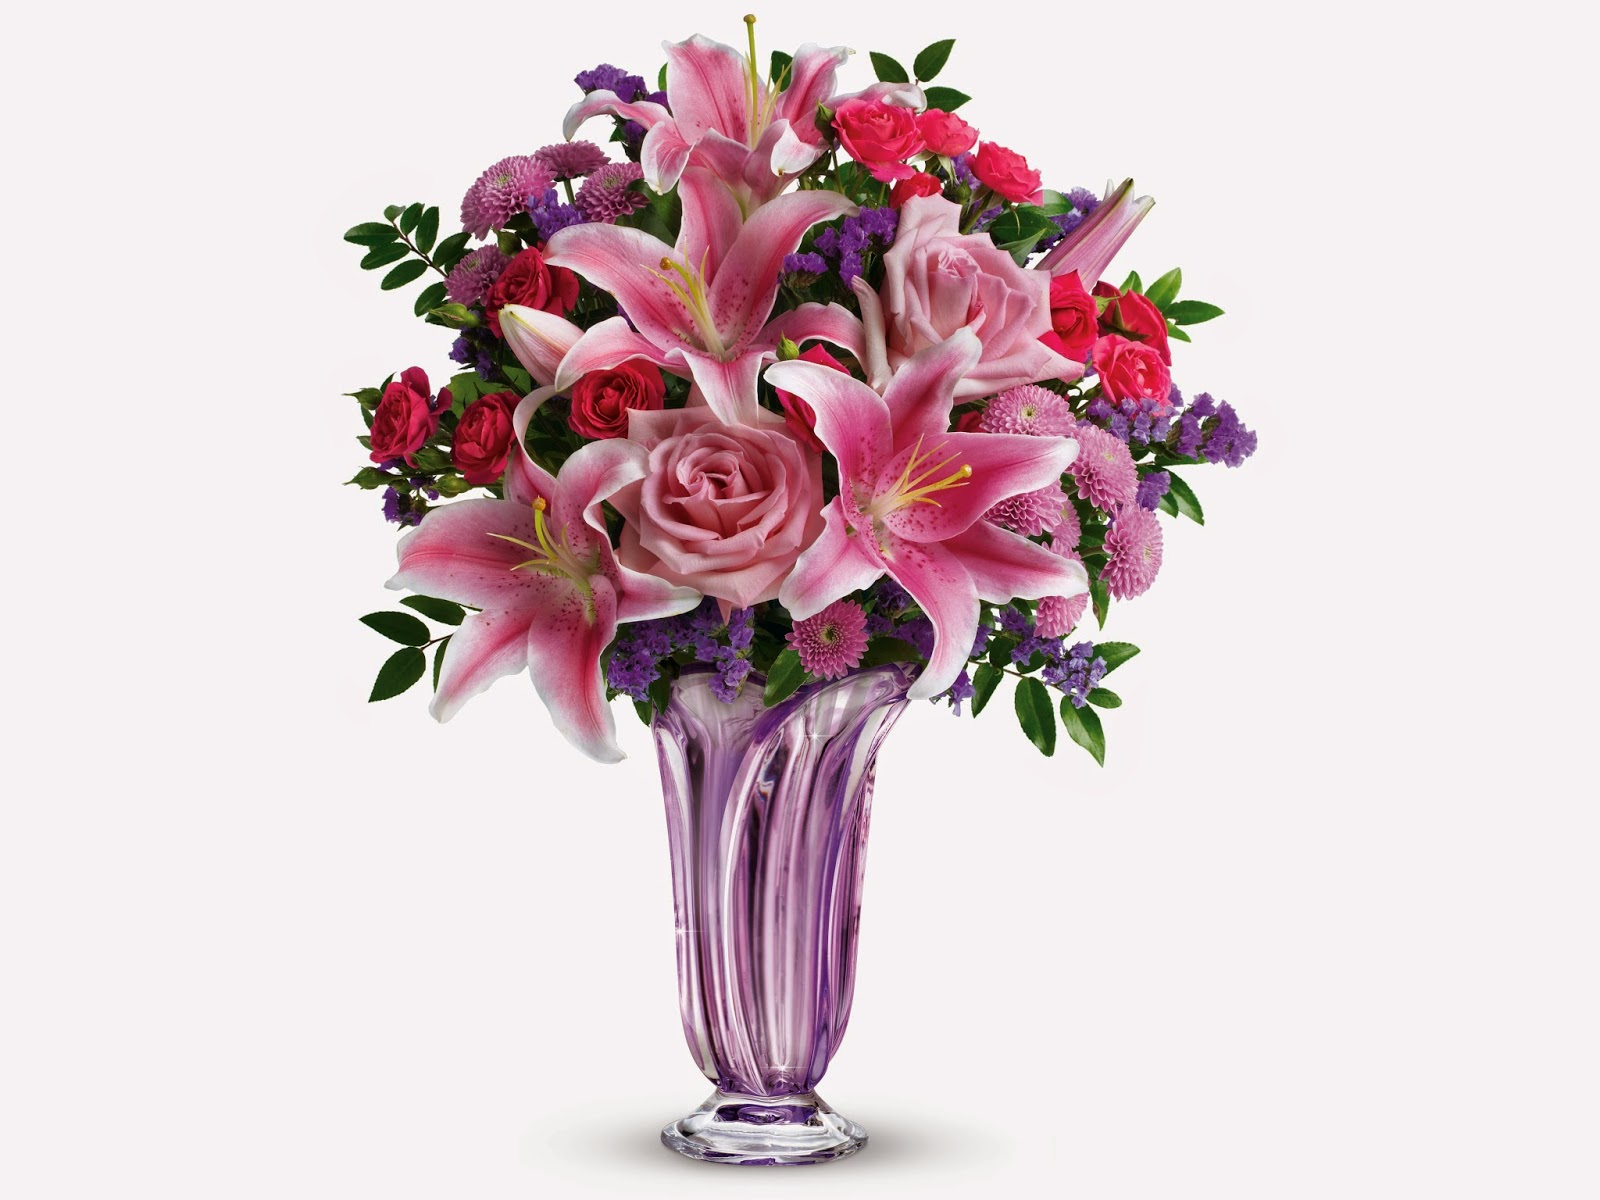 Images of floral bouquets picture royalty free library Images of floral bouquets - ClipartFest picture royalty free library